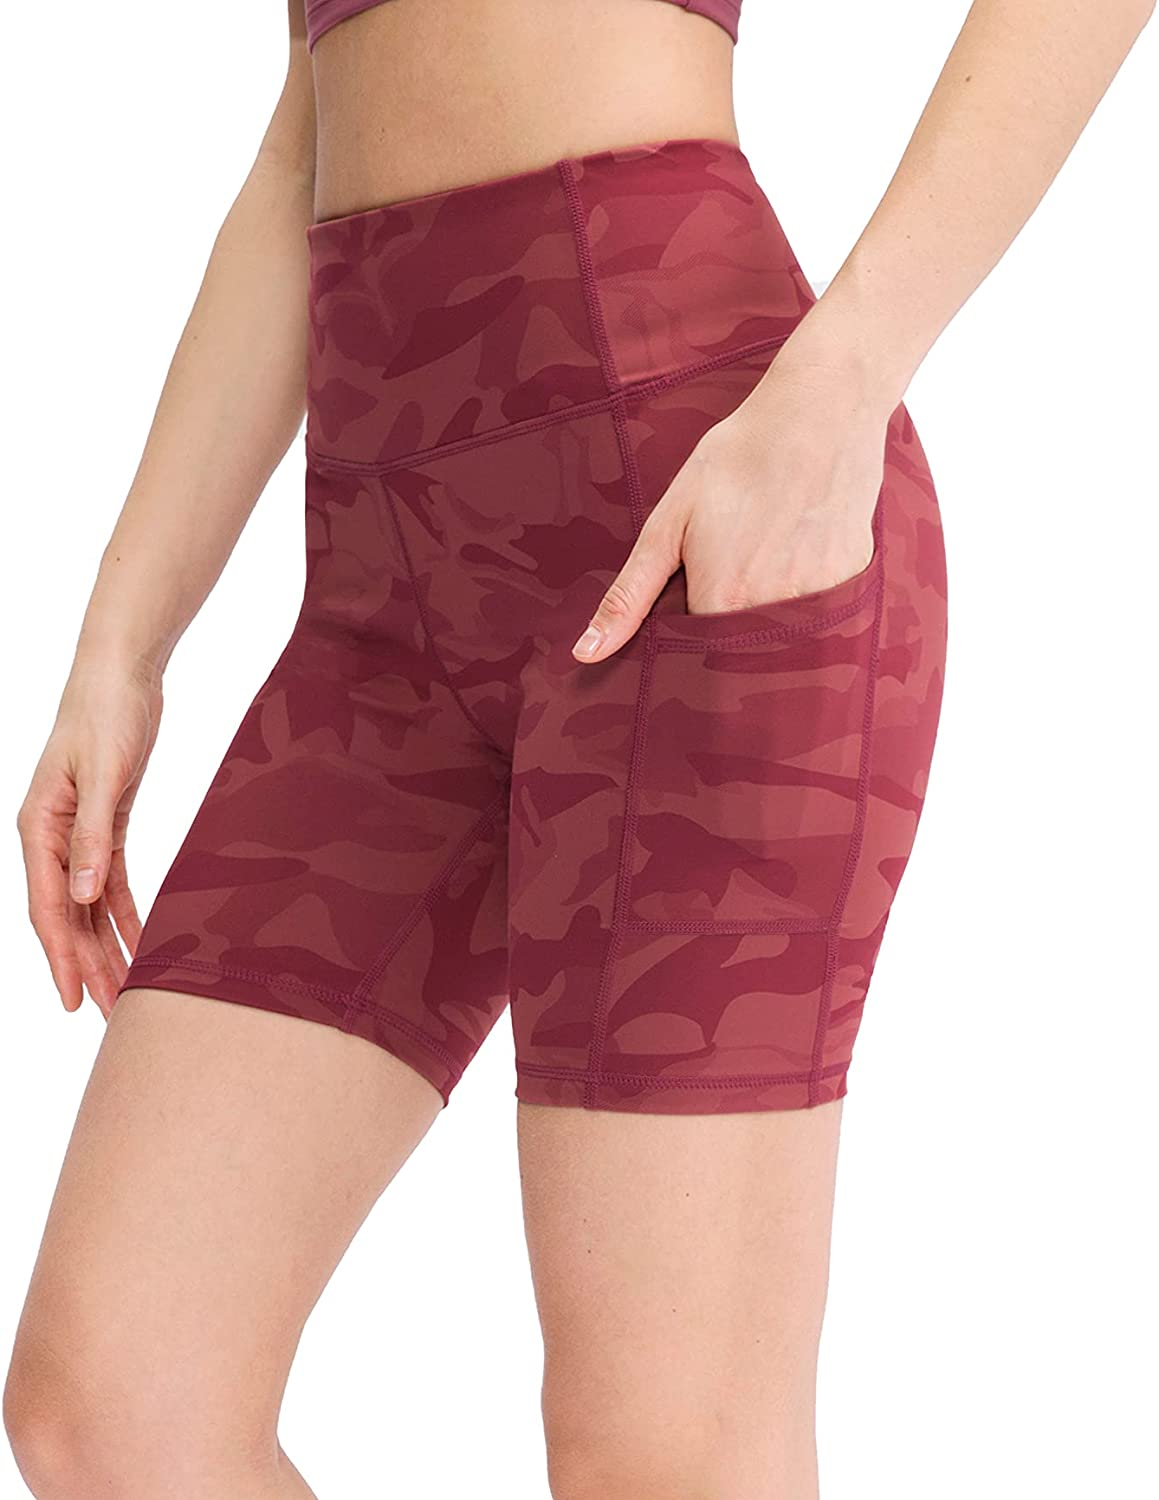 NUOVA Tampa Mall ACTIVE Women's High Waist Print Athletic Regular dealer with Shorts